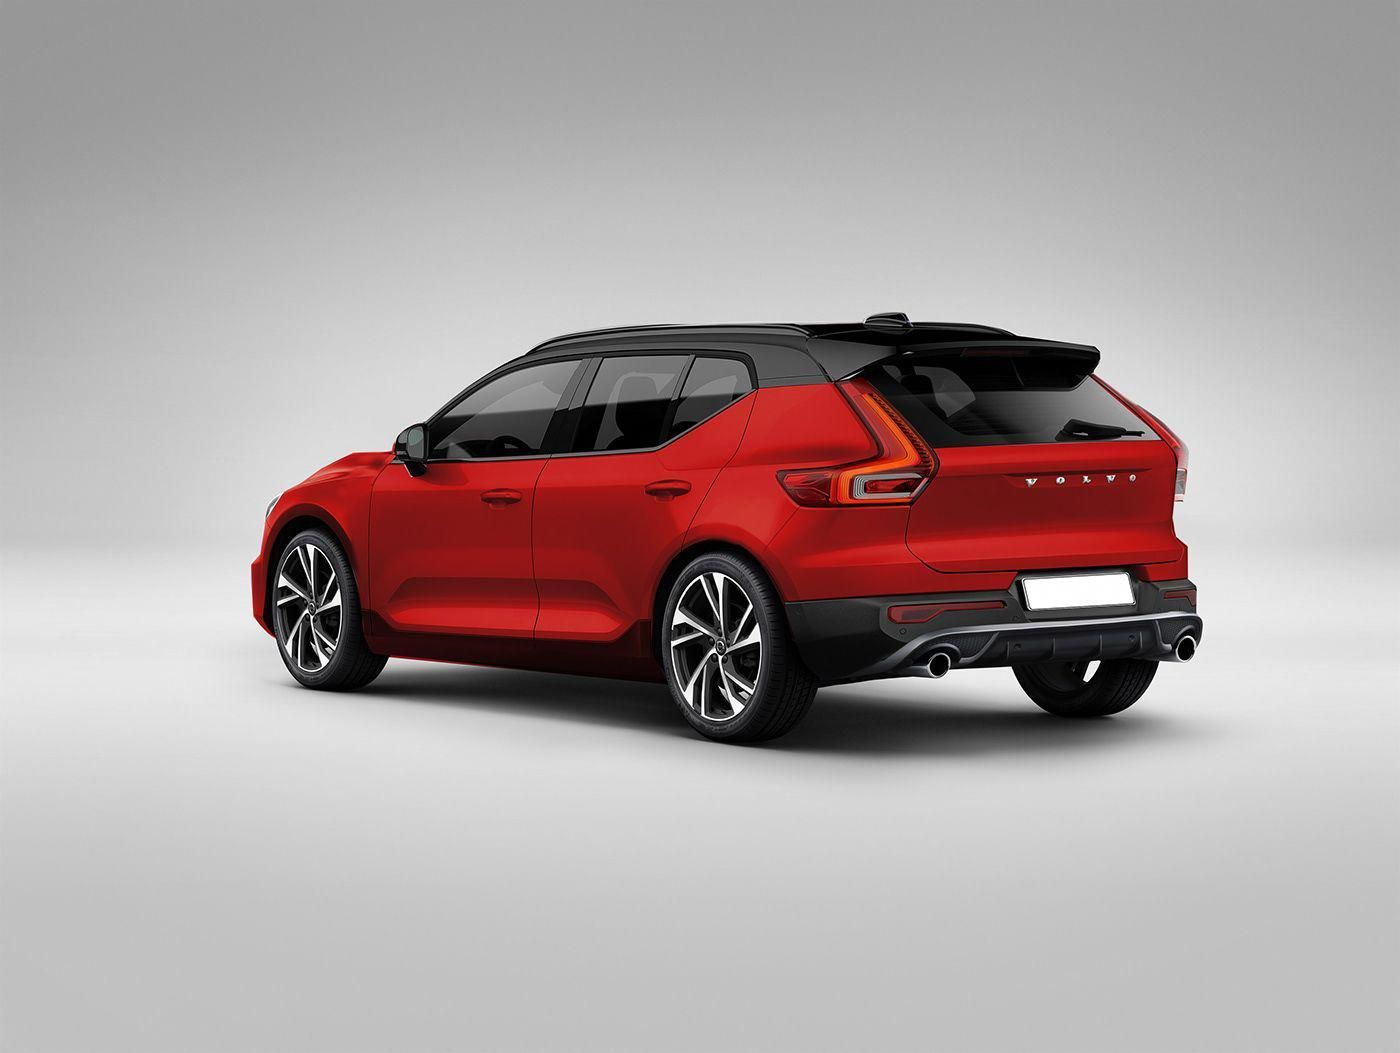 Best Volvo V40 2019 Wallpaper bestsportscars Luxury sports cars 1400x1053